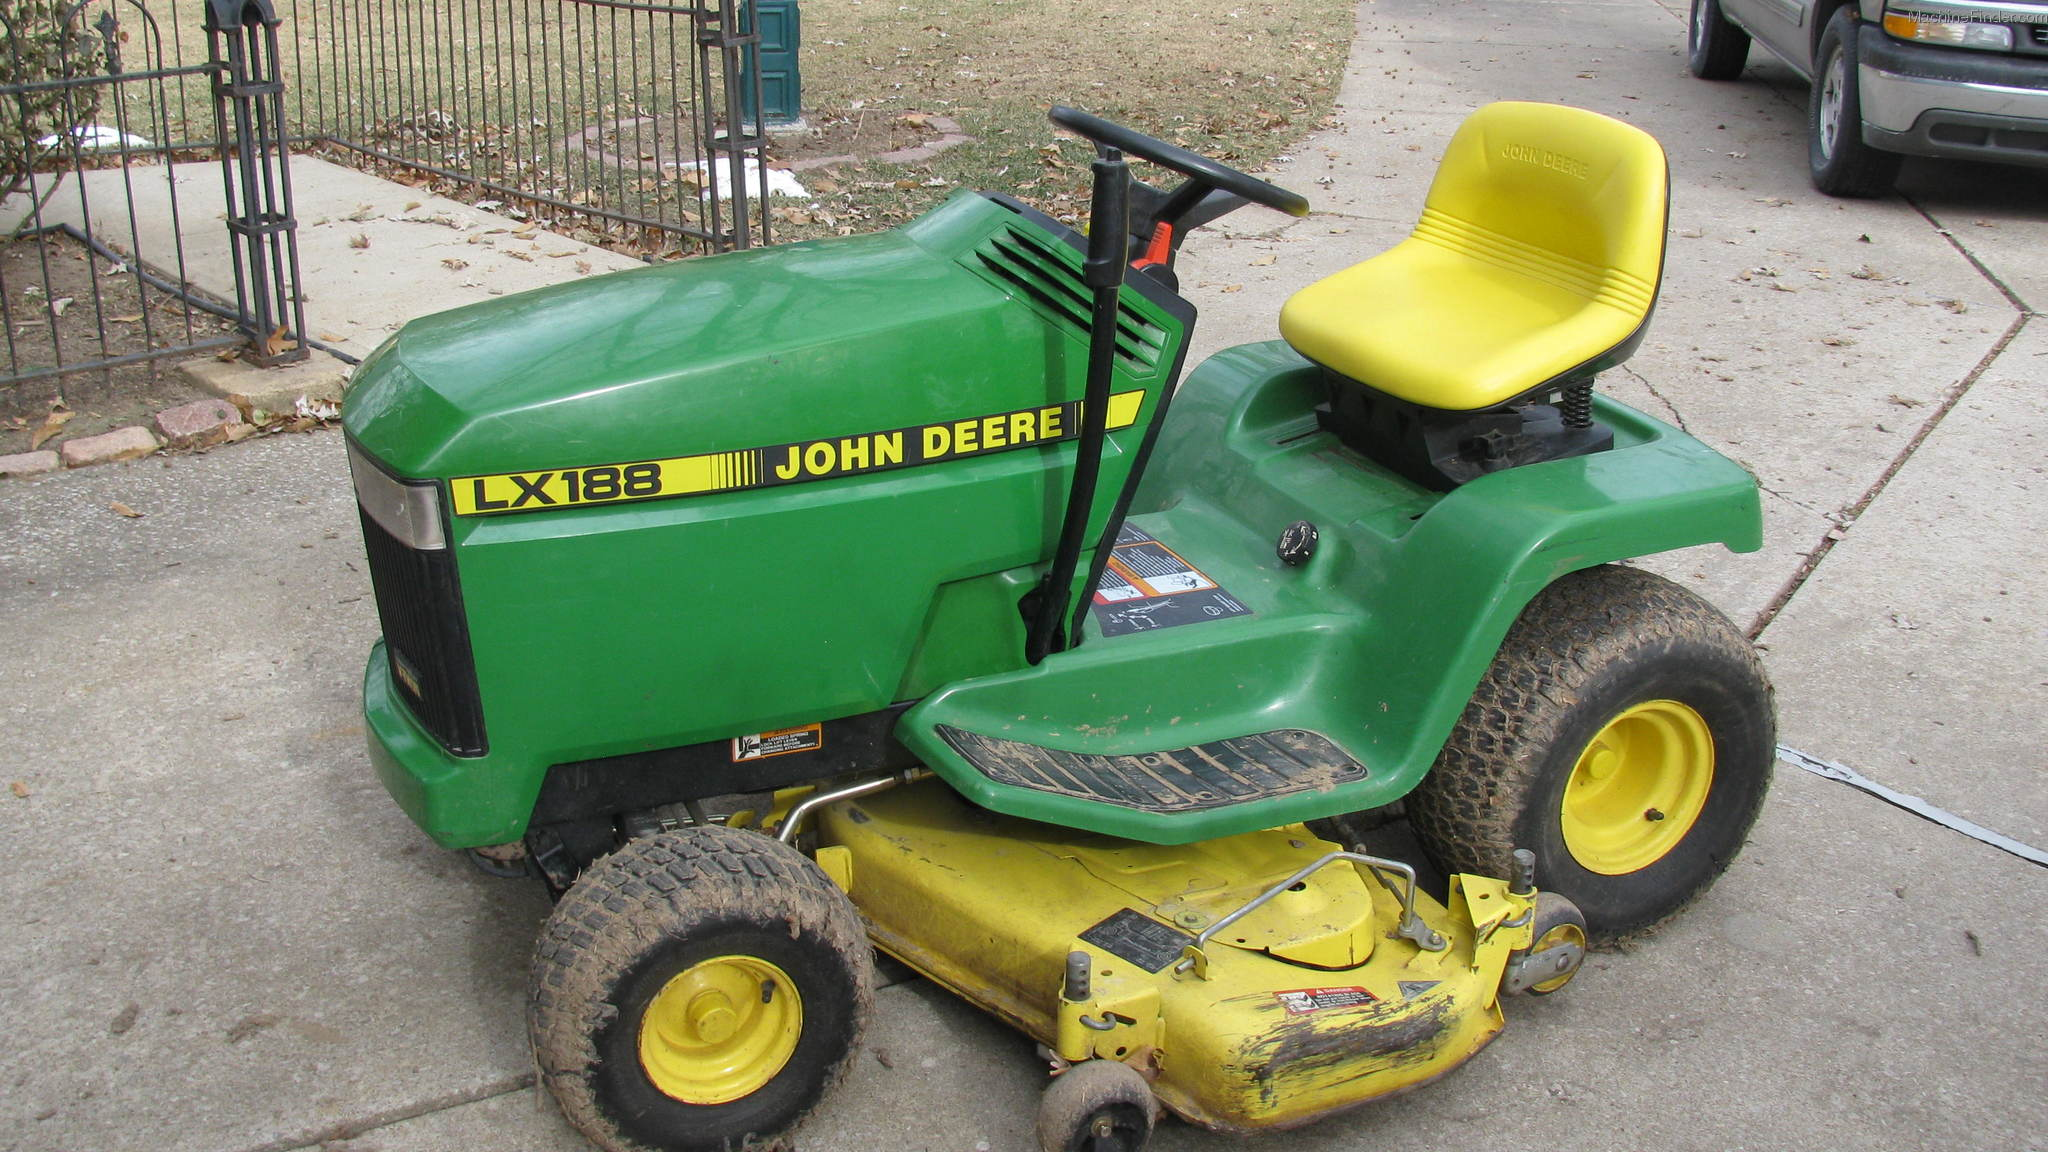 John Deere Lx280 Lawn Tractor Tractors Model Riding Lawnmowermodelr72i Need The Assembly Diagram 1994 Lx188 Garden And Commercial Mowing